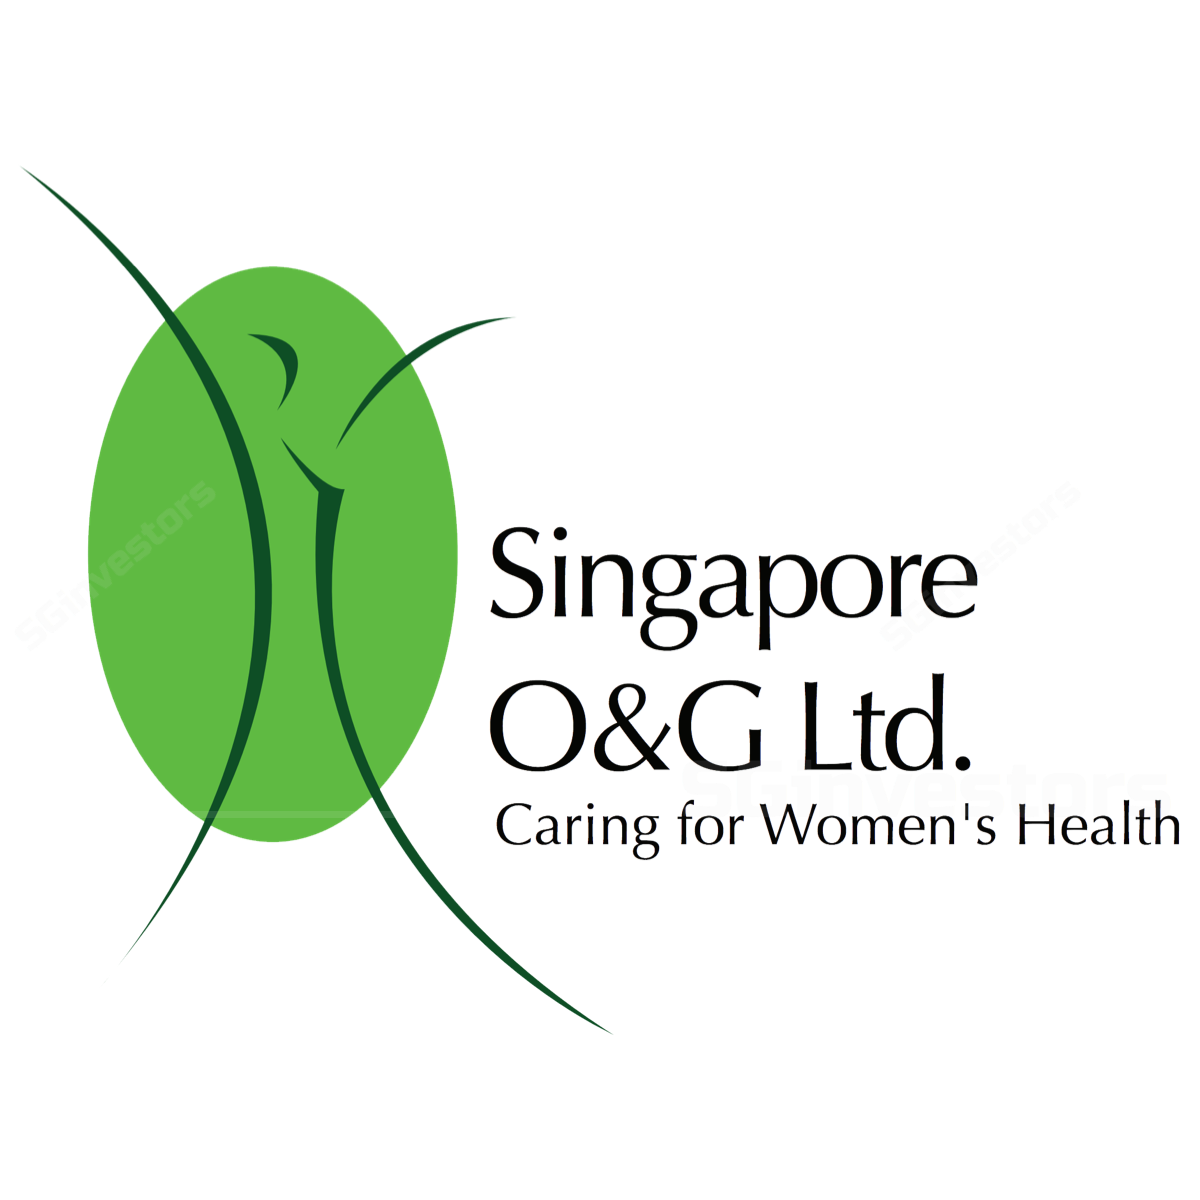 SINGAPORE O&G LTD (SOG SP) - UOB Kay Hian 2017-08-11: Lacklustre 1H17 But Attractive Valuation After Steep Share Price Decline